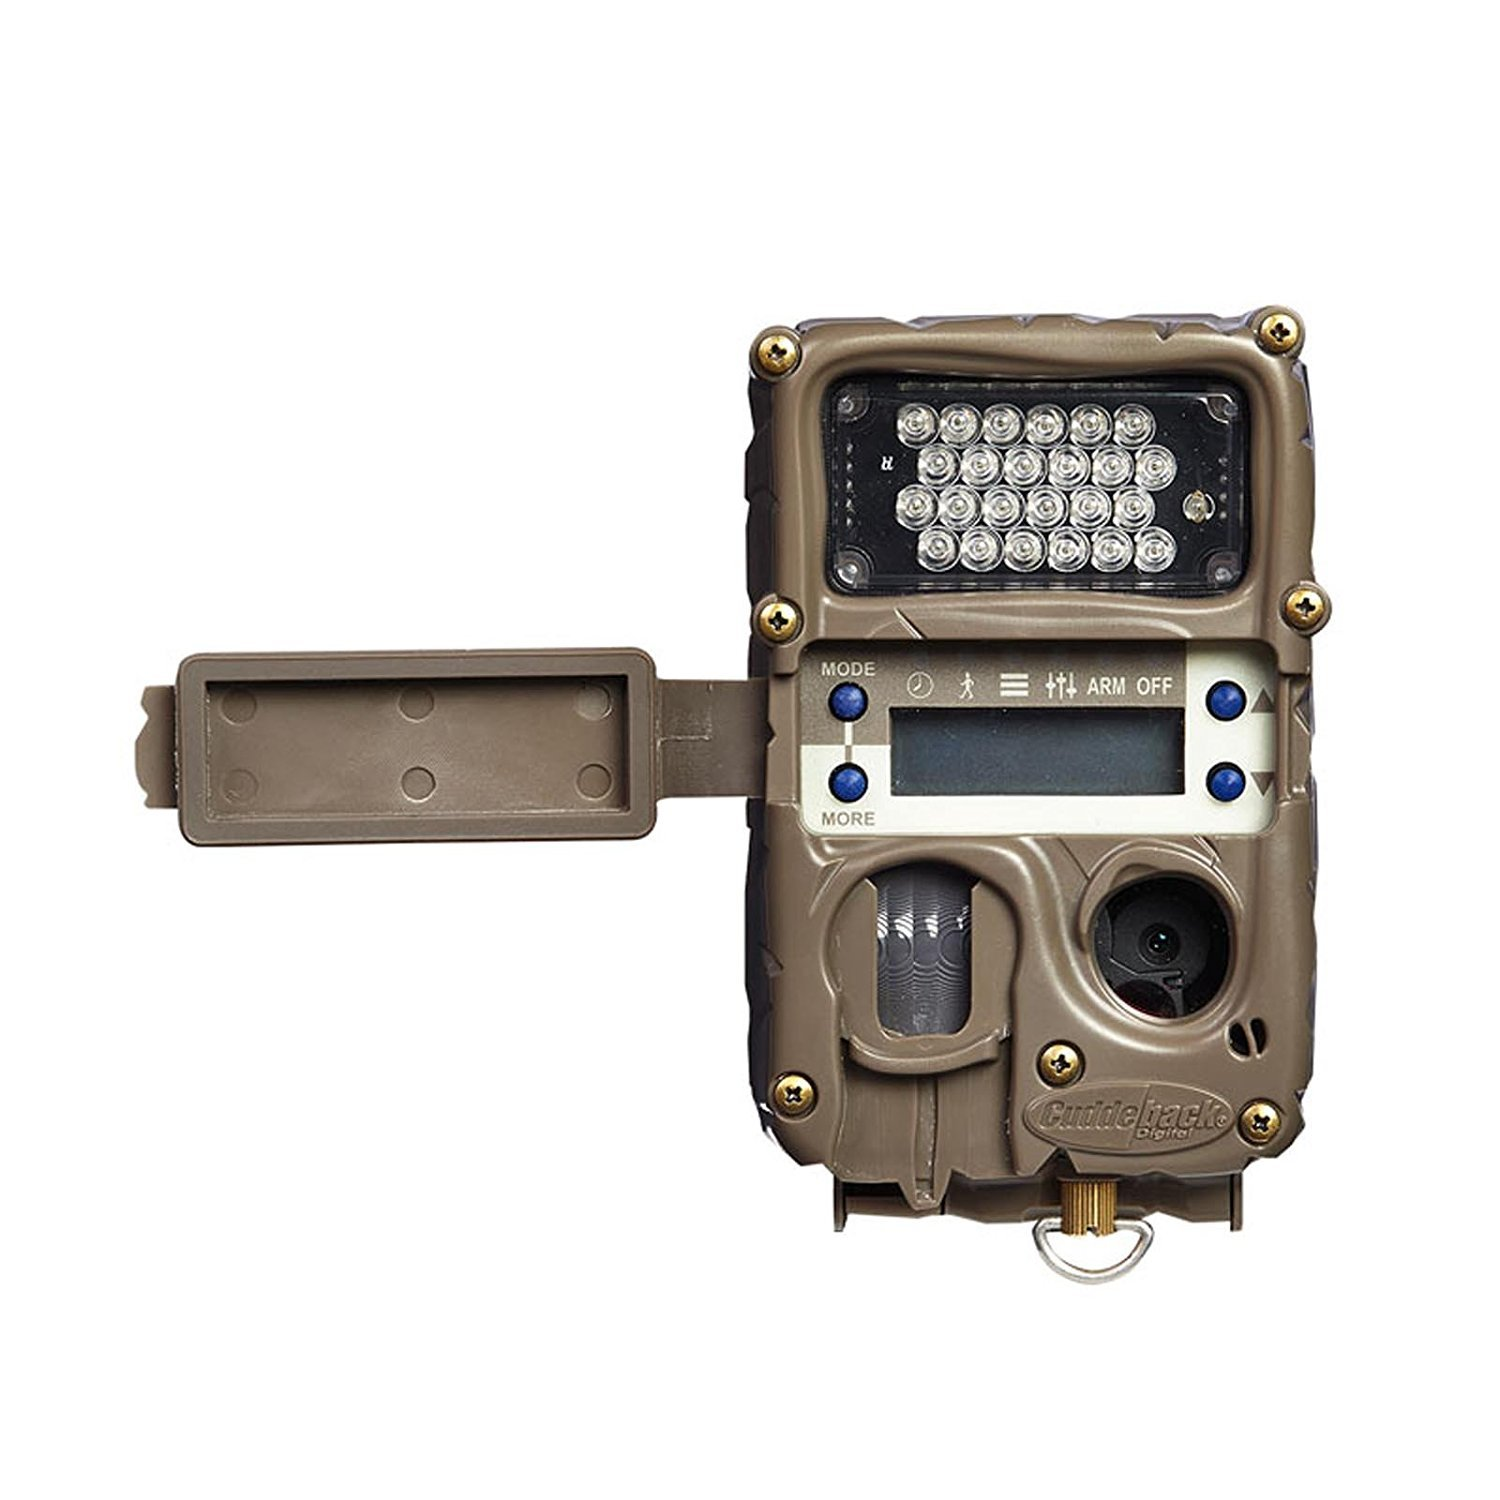 Cuddeback 20MP Long Range IR  Infrared Trail Game Hunting Camera with Mounting Bracket and Strap by Cuddeback (Image #1)